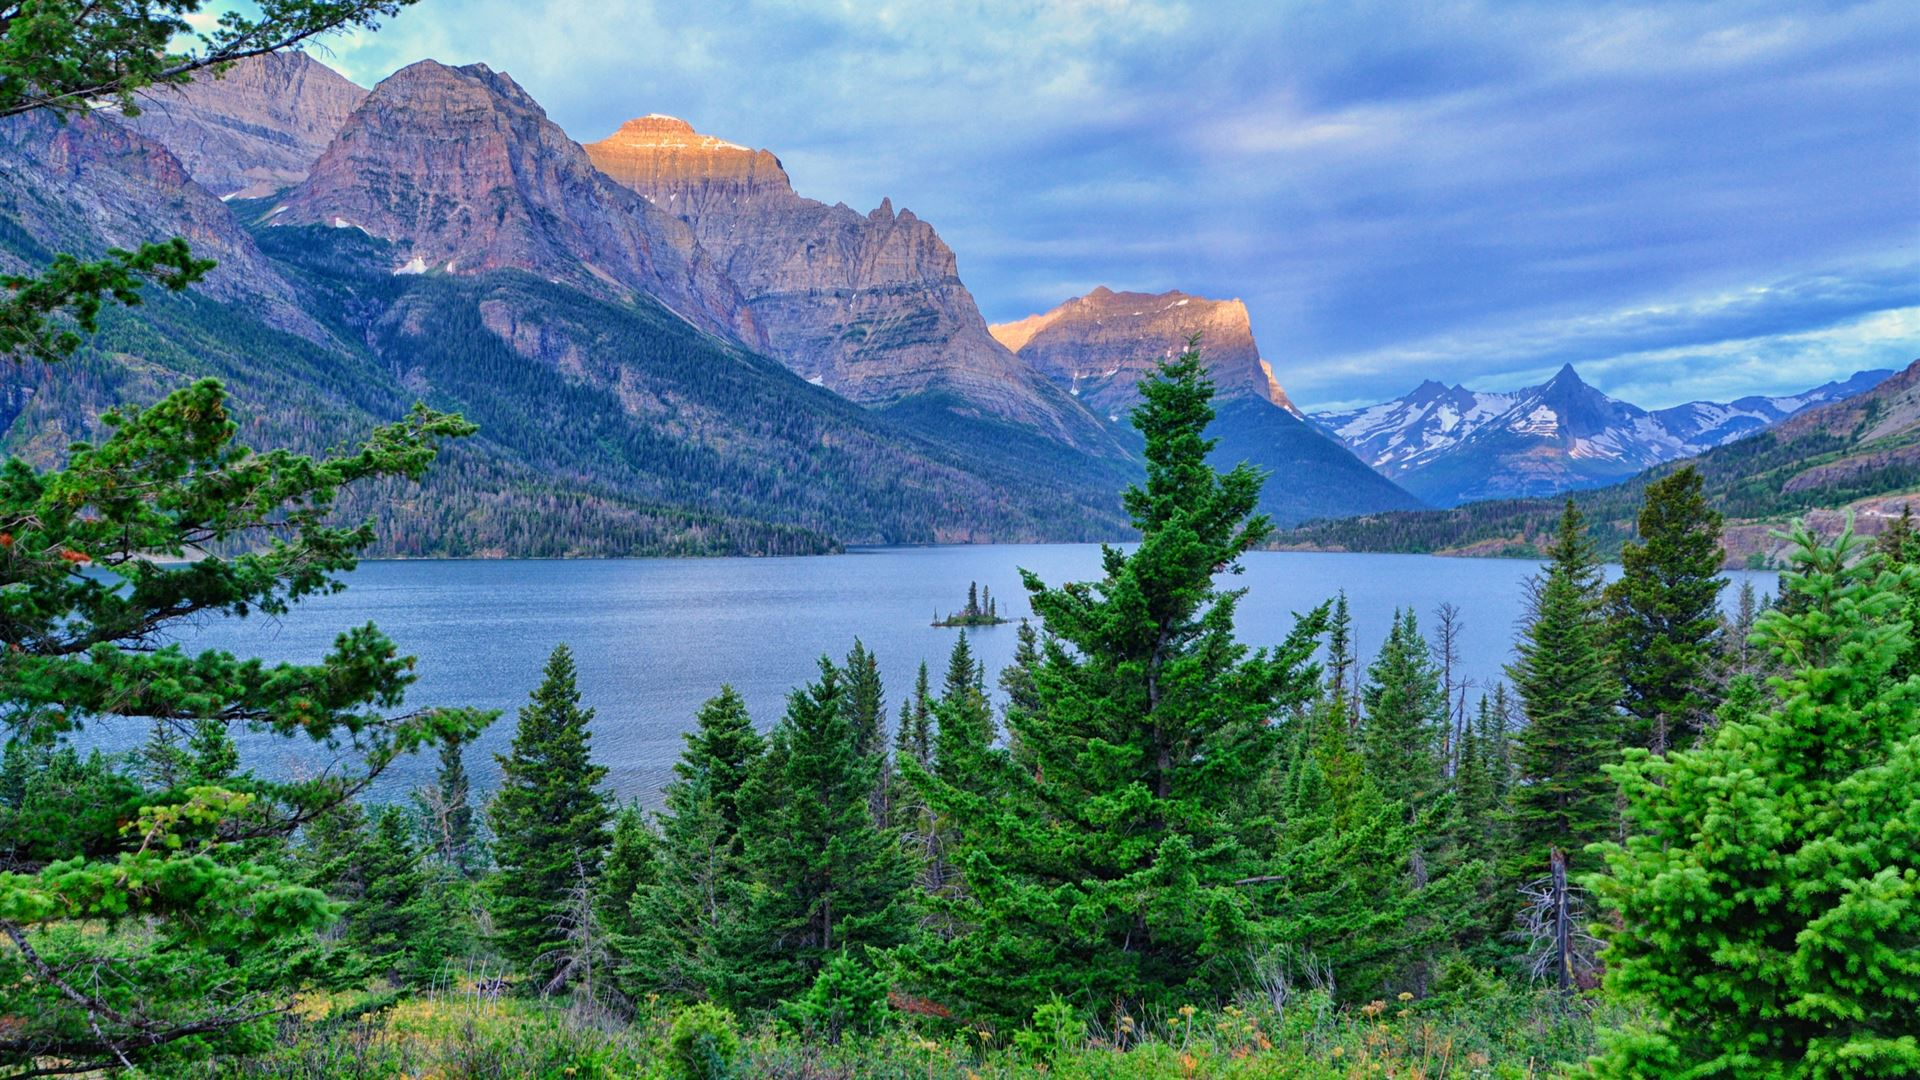 Glacier National Park Mac Wallpaper Download | Free Mac ...